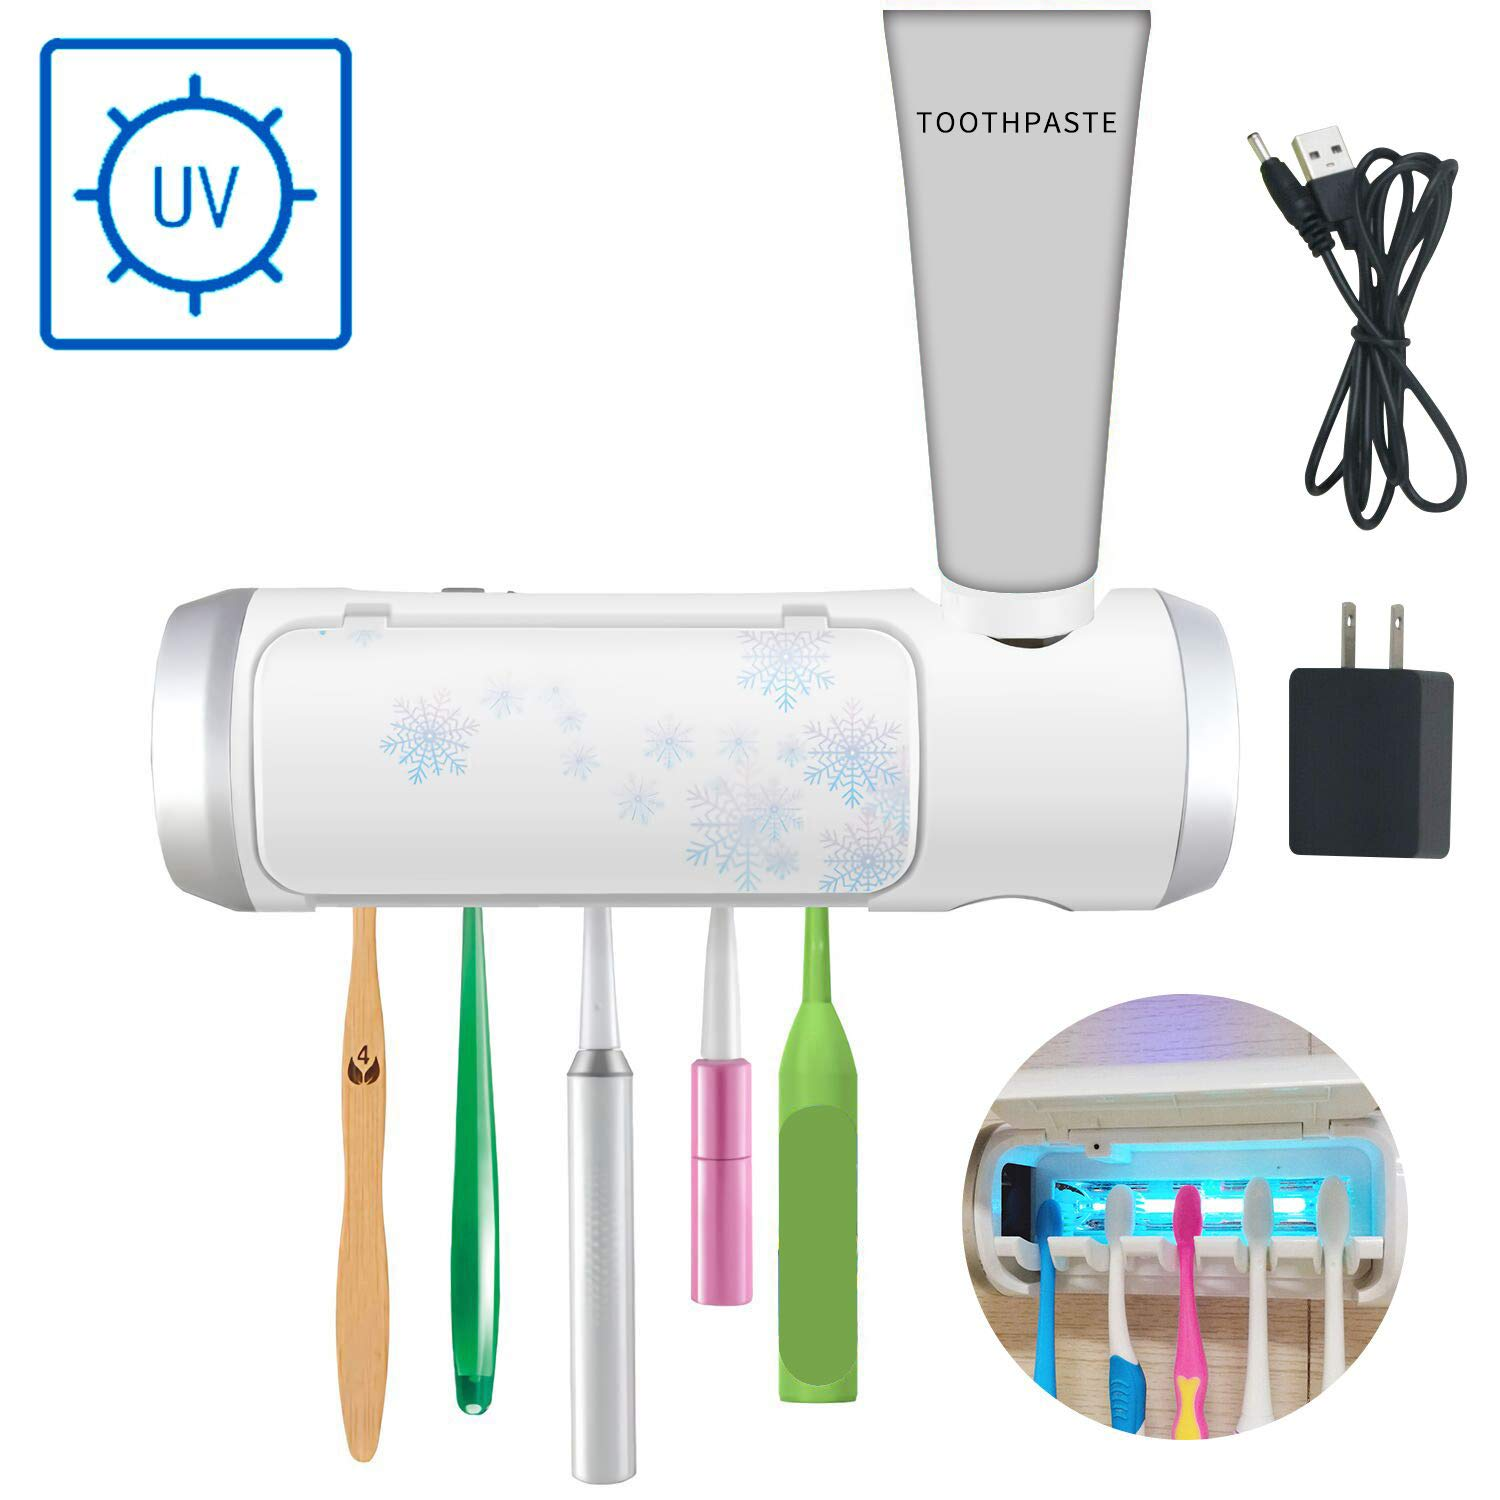 AQUATREND UV Toothbrush & Toothpaste Holder Sanitizer with Ultraviolet Light Sterilization Function, Drying & Build-in Fan, 5 Slots for Family Kids, Shower Bathroom, USB Charging Equipped with Adapter by Aquatrend